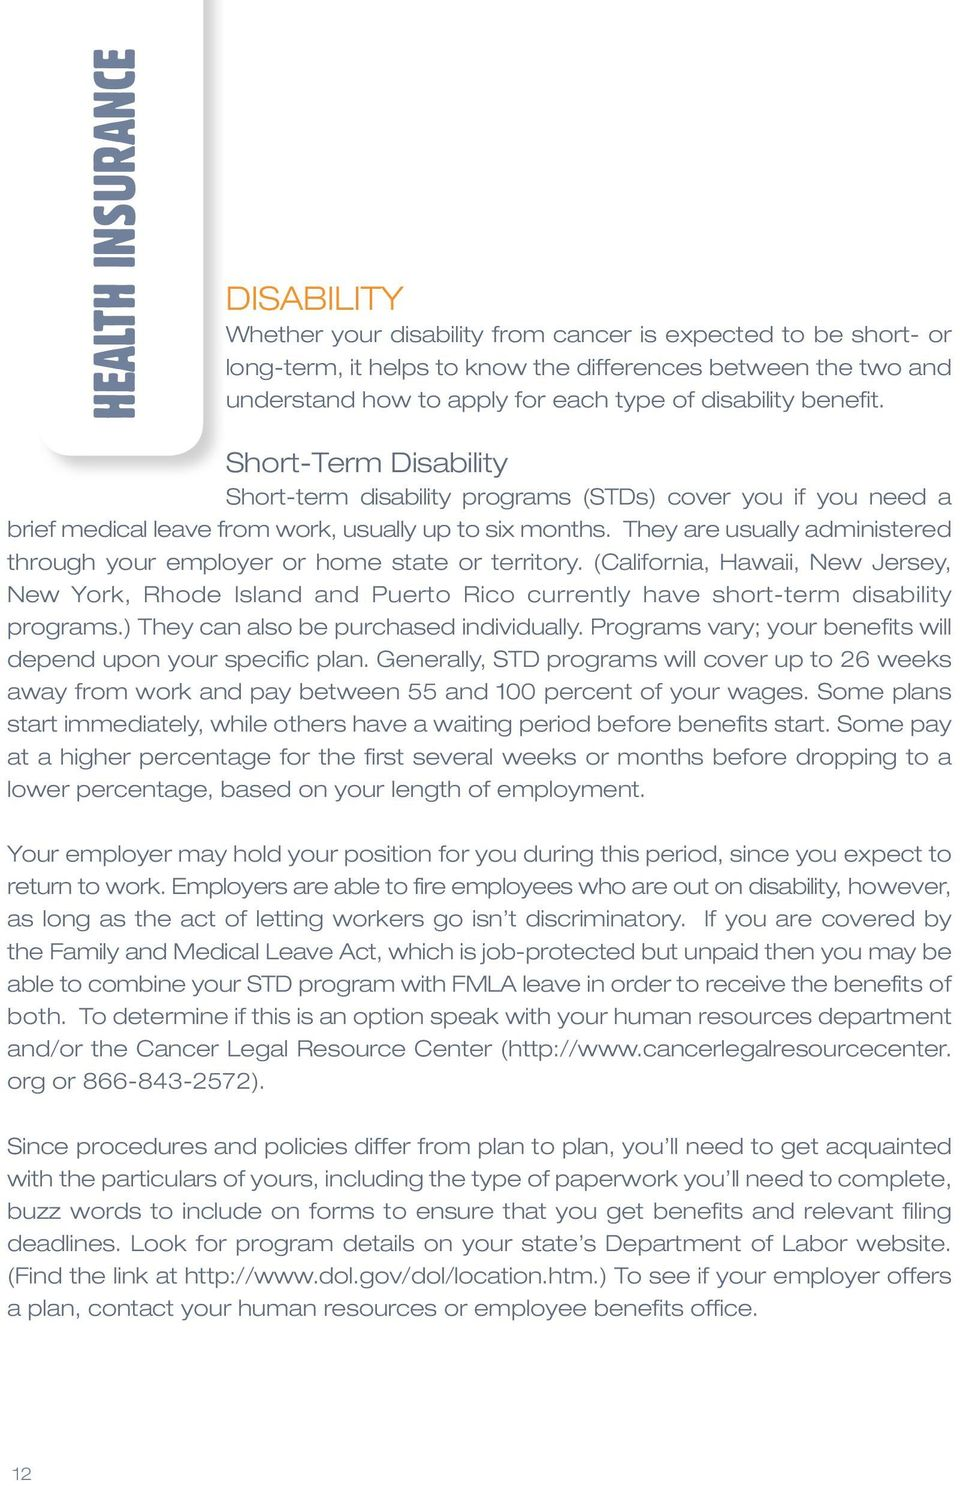 They are usually administered through your employer or home state or territory. (California, Hawaii, New Jersey, New York, Rhode Island and Puerto Rico currently have short-term disability programs.